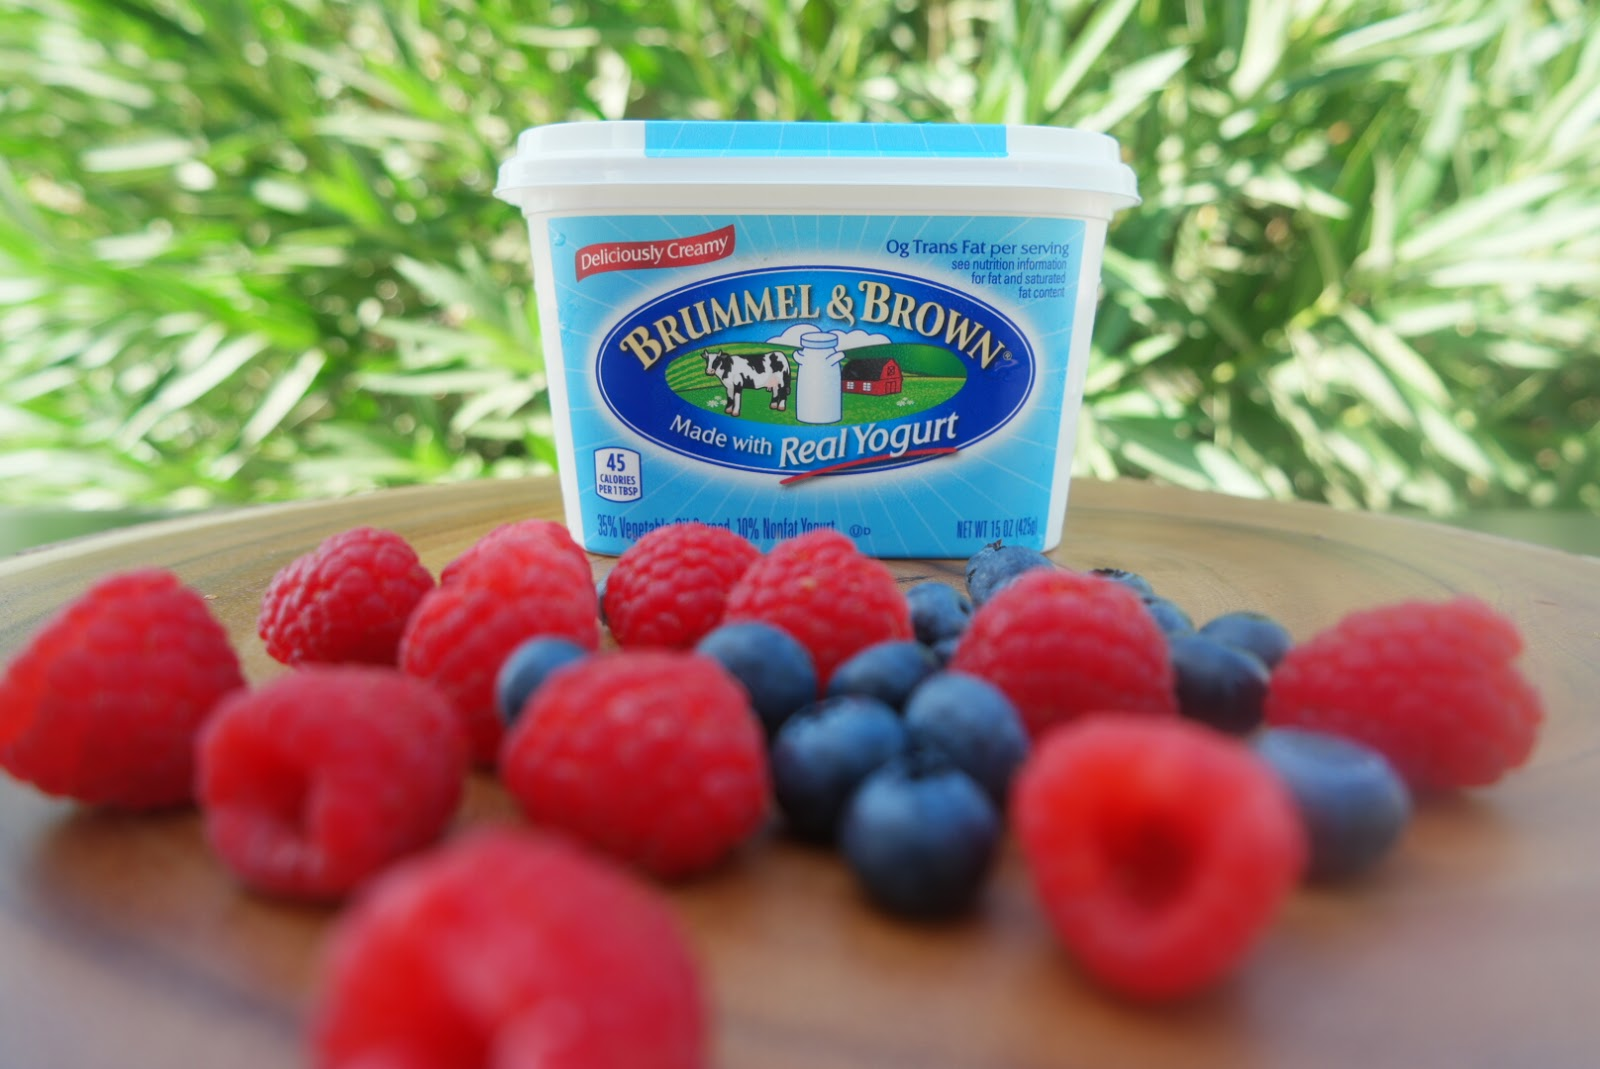 Using Brummel & Brown Yogurt Spread, this is a simple way to incorporate this delicious spread (that is made with the goodness of real yogurt) and fresh ...